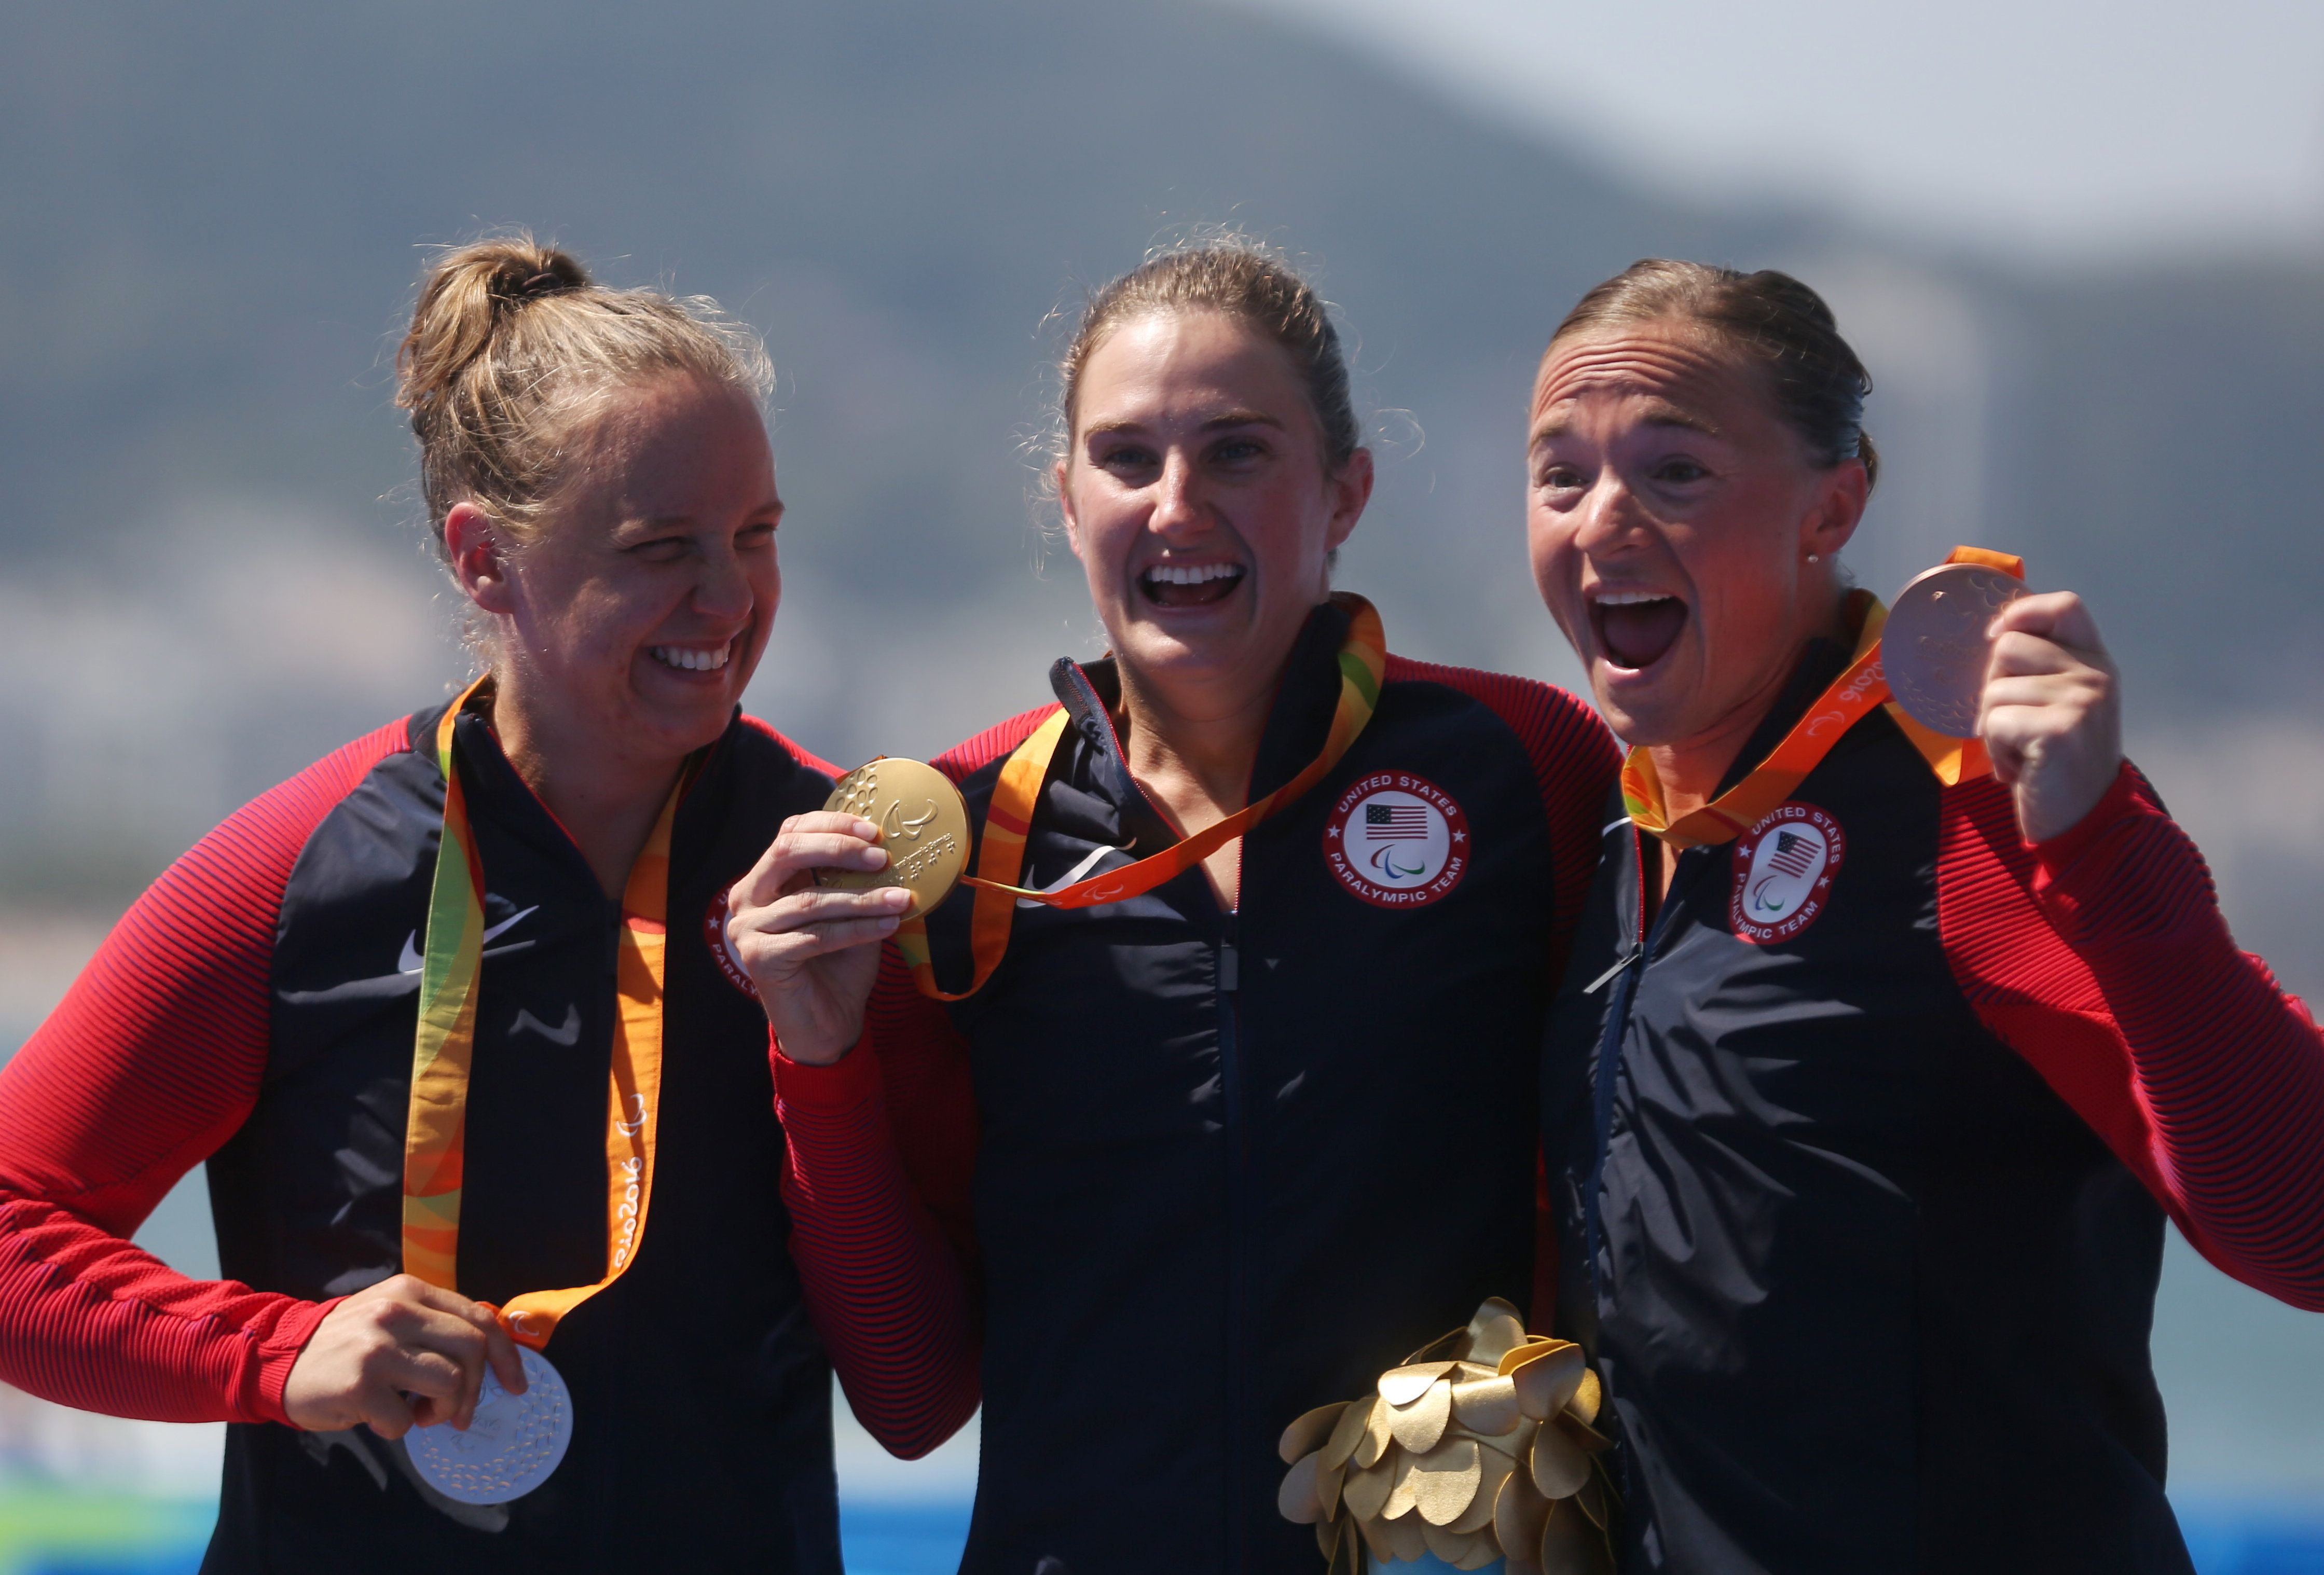 From left, Hailey Danisewicz, Allysa Seely and Melissa Stockwell of the United States celebrate their triathlon medals.